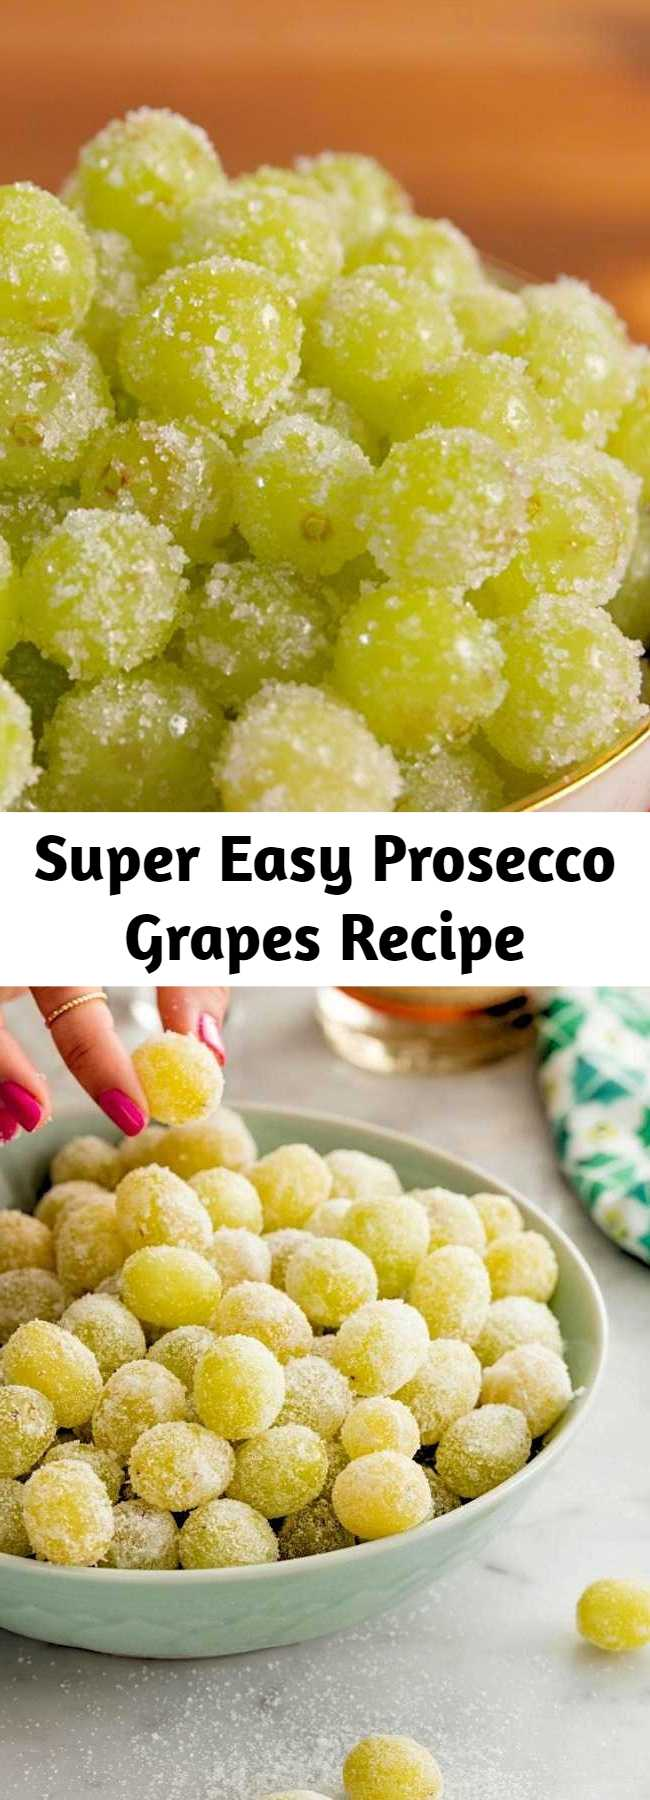 Super Easy Prosecco Grapes Recipe - These Sugared Prosecco Grapes are a super easy dessert recipe! These boozy, fun champagne soaked grapes are perfect for parties, as is or frozen! Give grapes a festive upgrade!